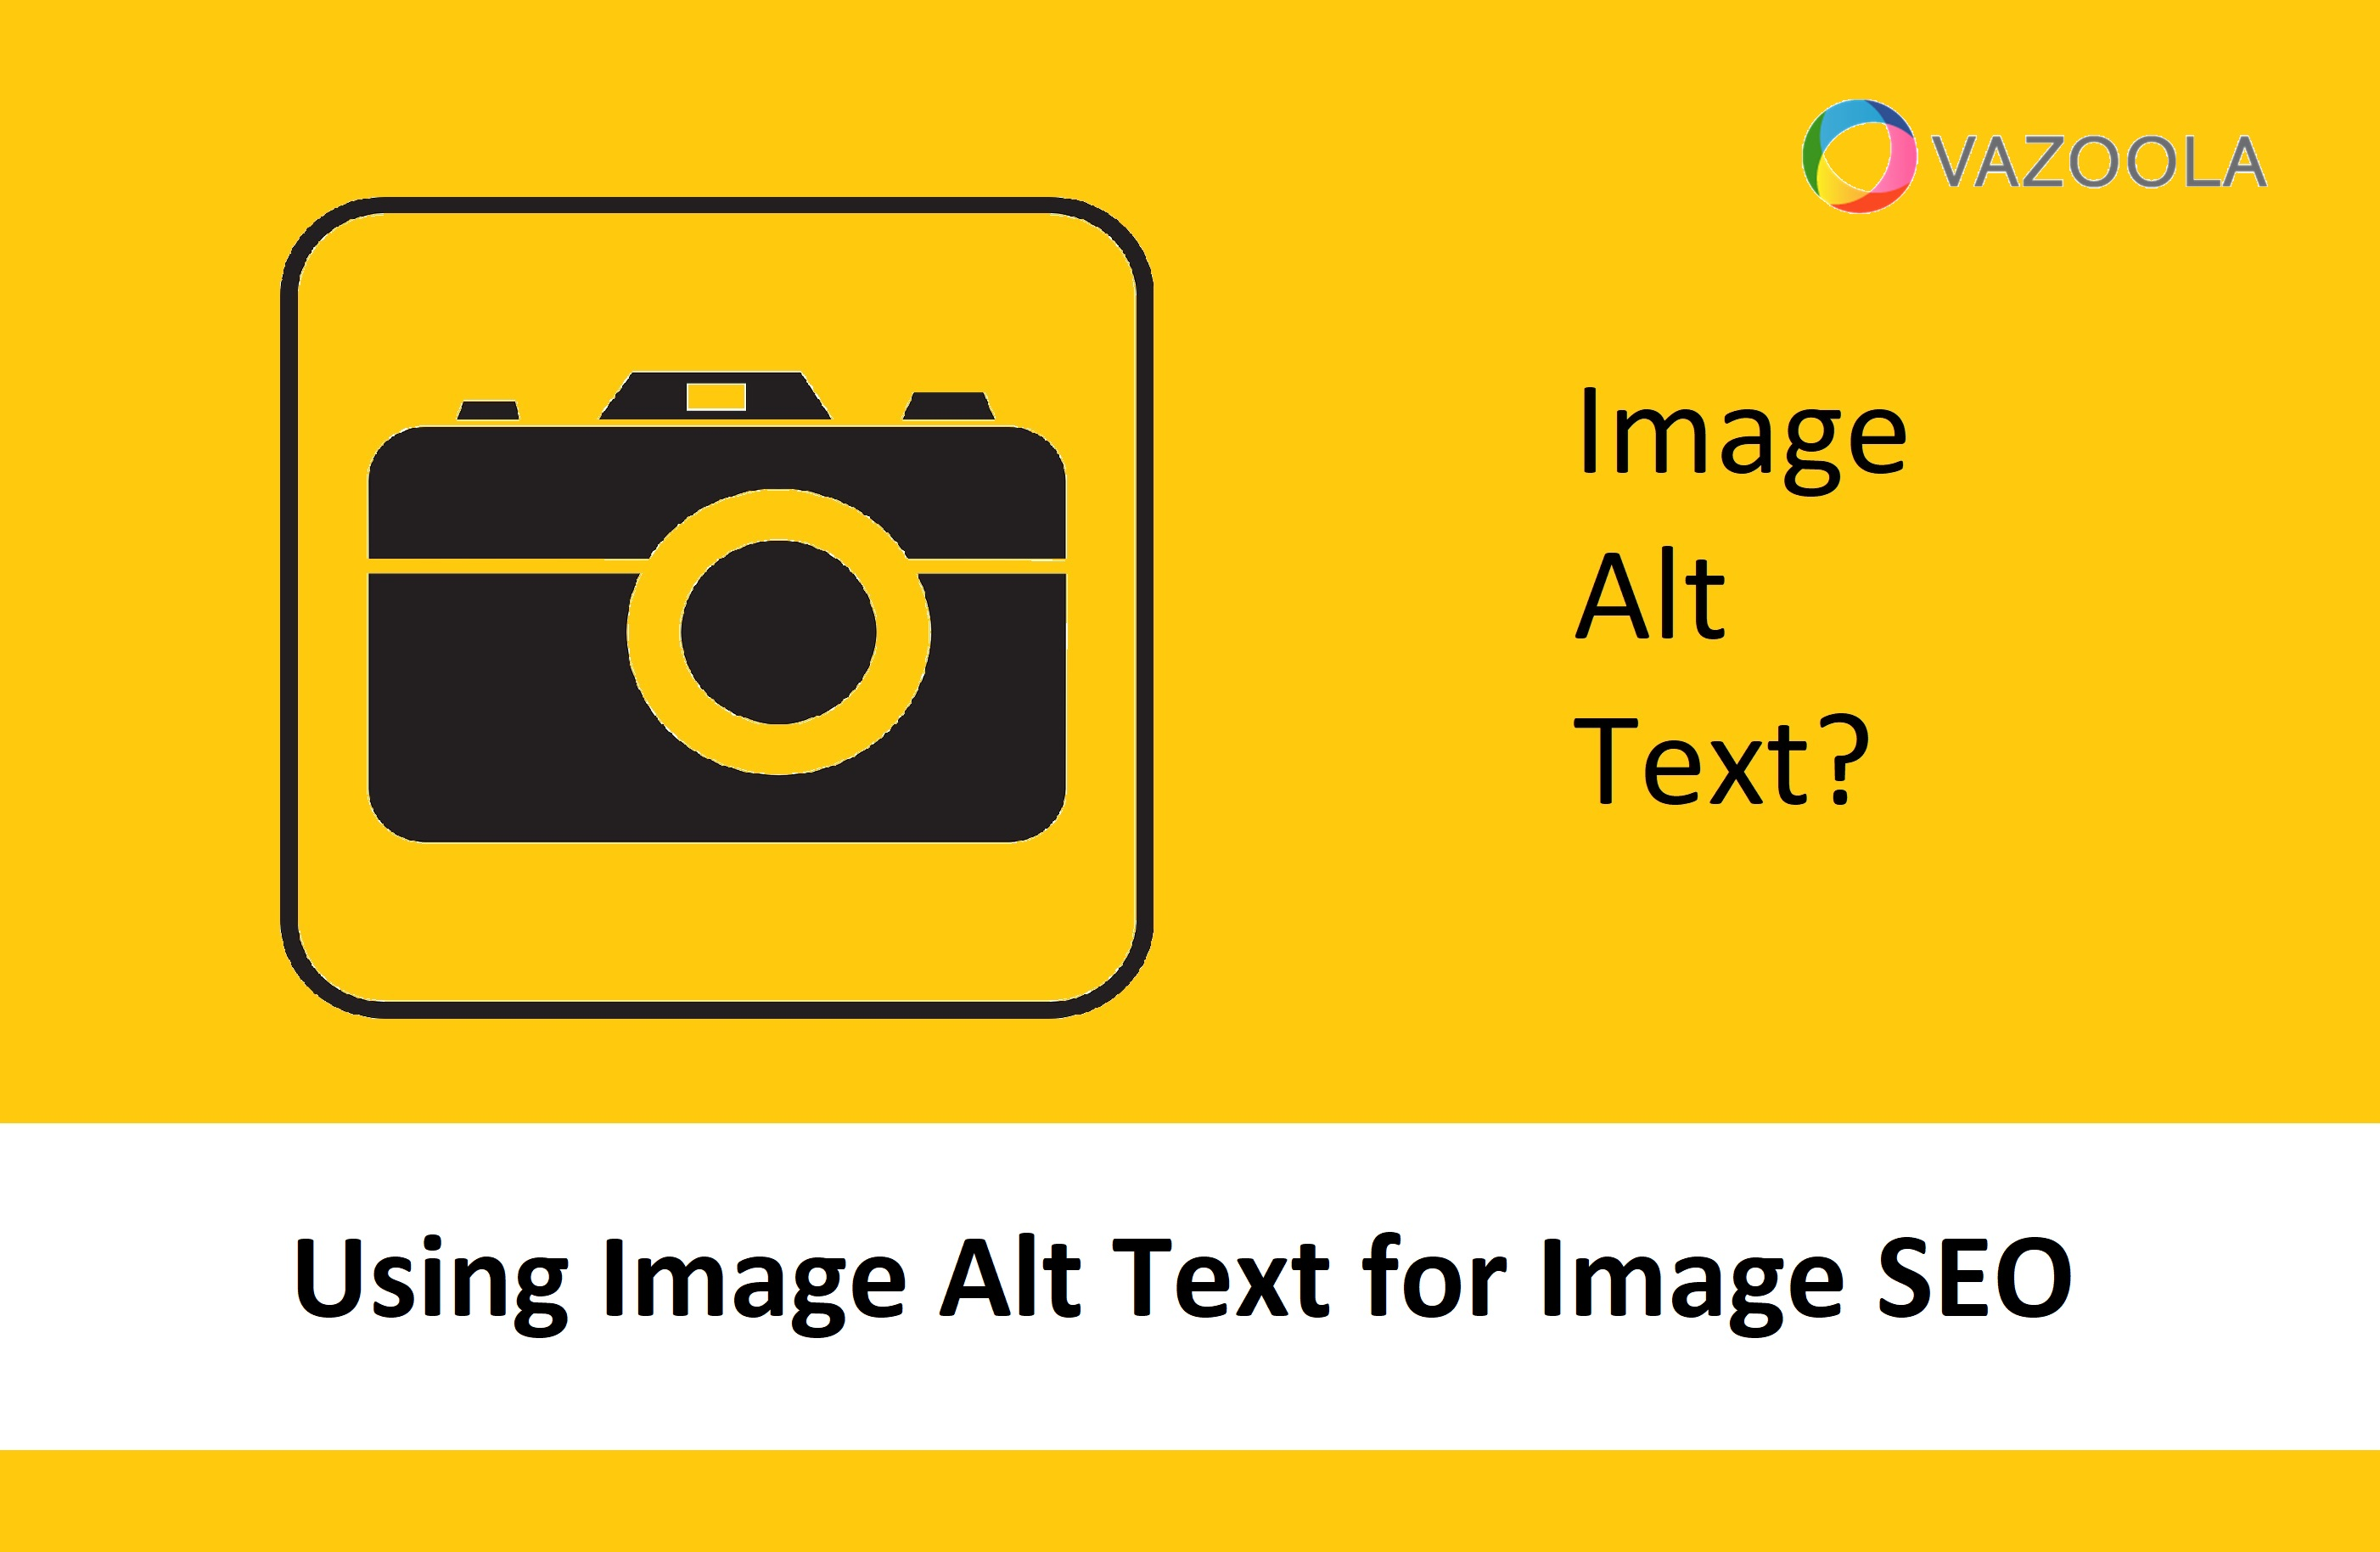 Using Image Alt Text for Image SEO